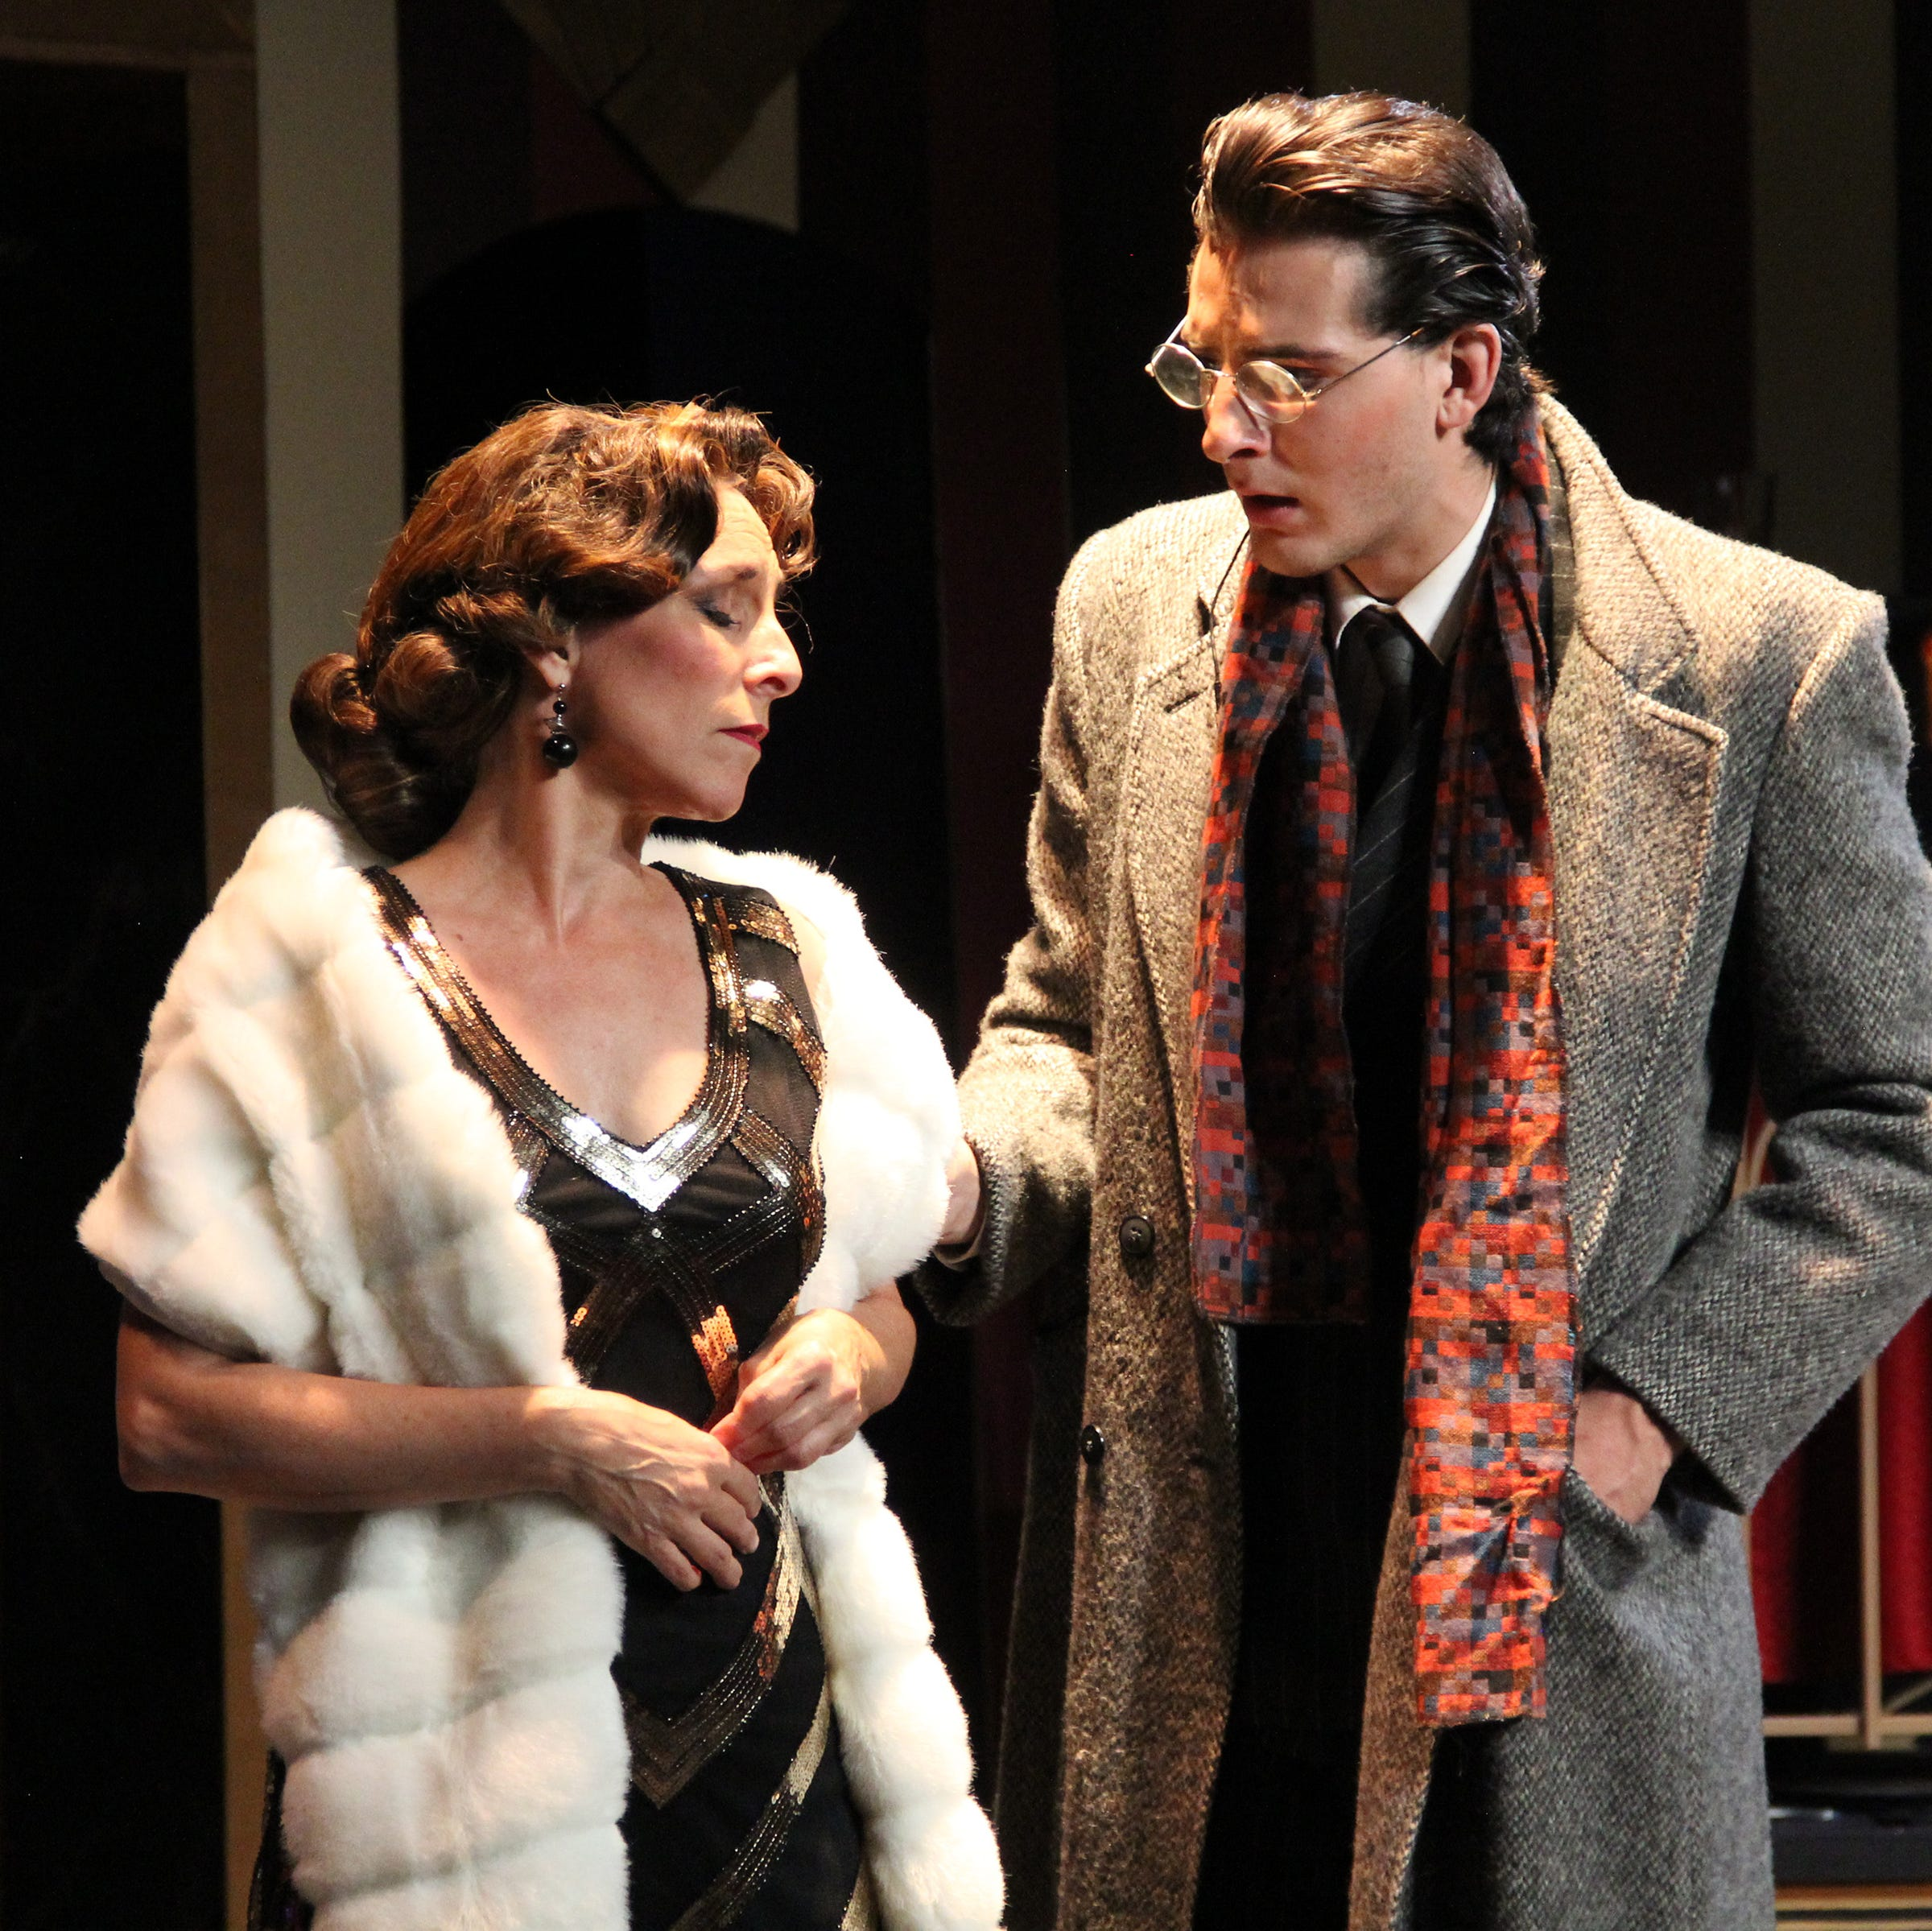 Review: Barn Theatre's 'Bullets Over Broadway' misbehaves in sidesplitting ways